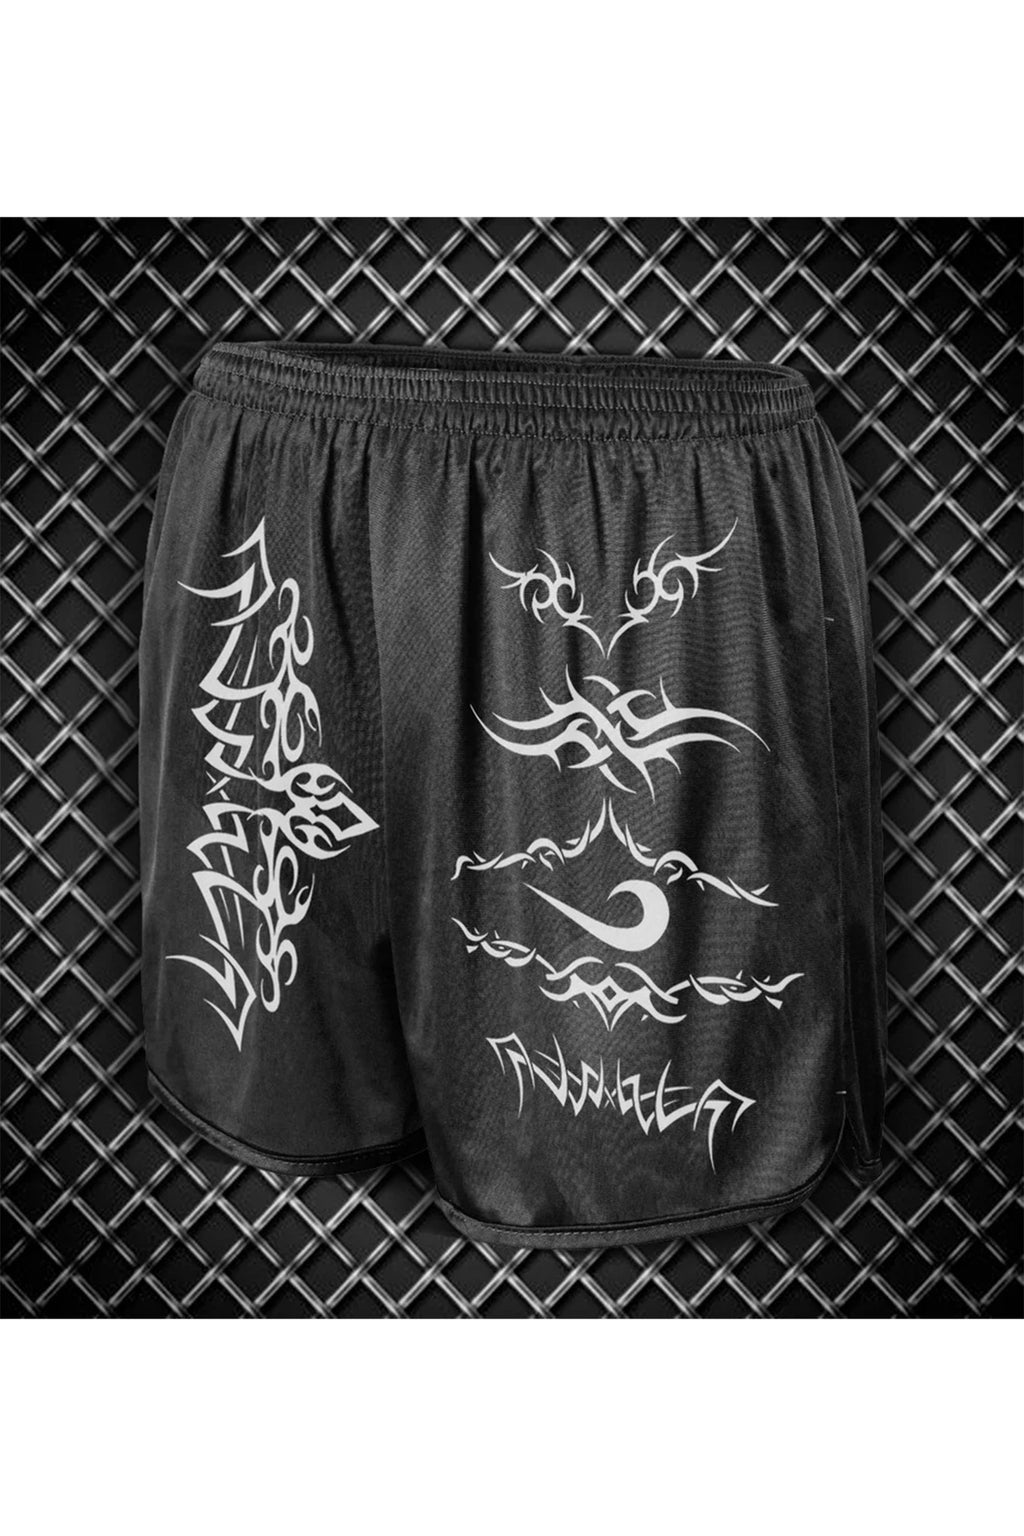 TRIBAL SWIISH™ BLACK RUNNING SHORTS